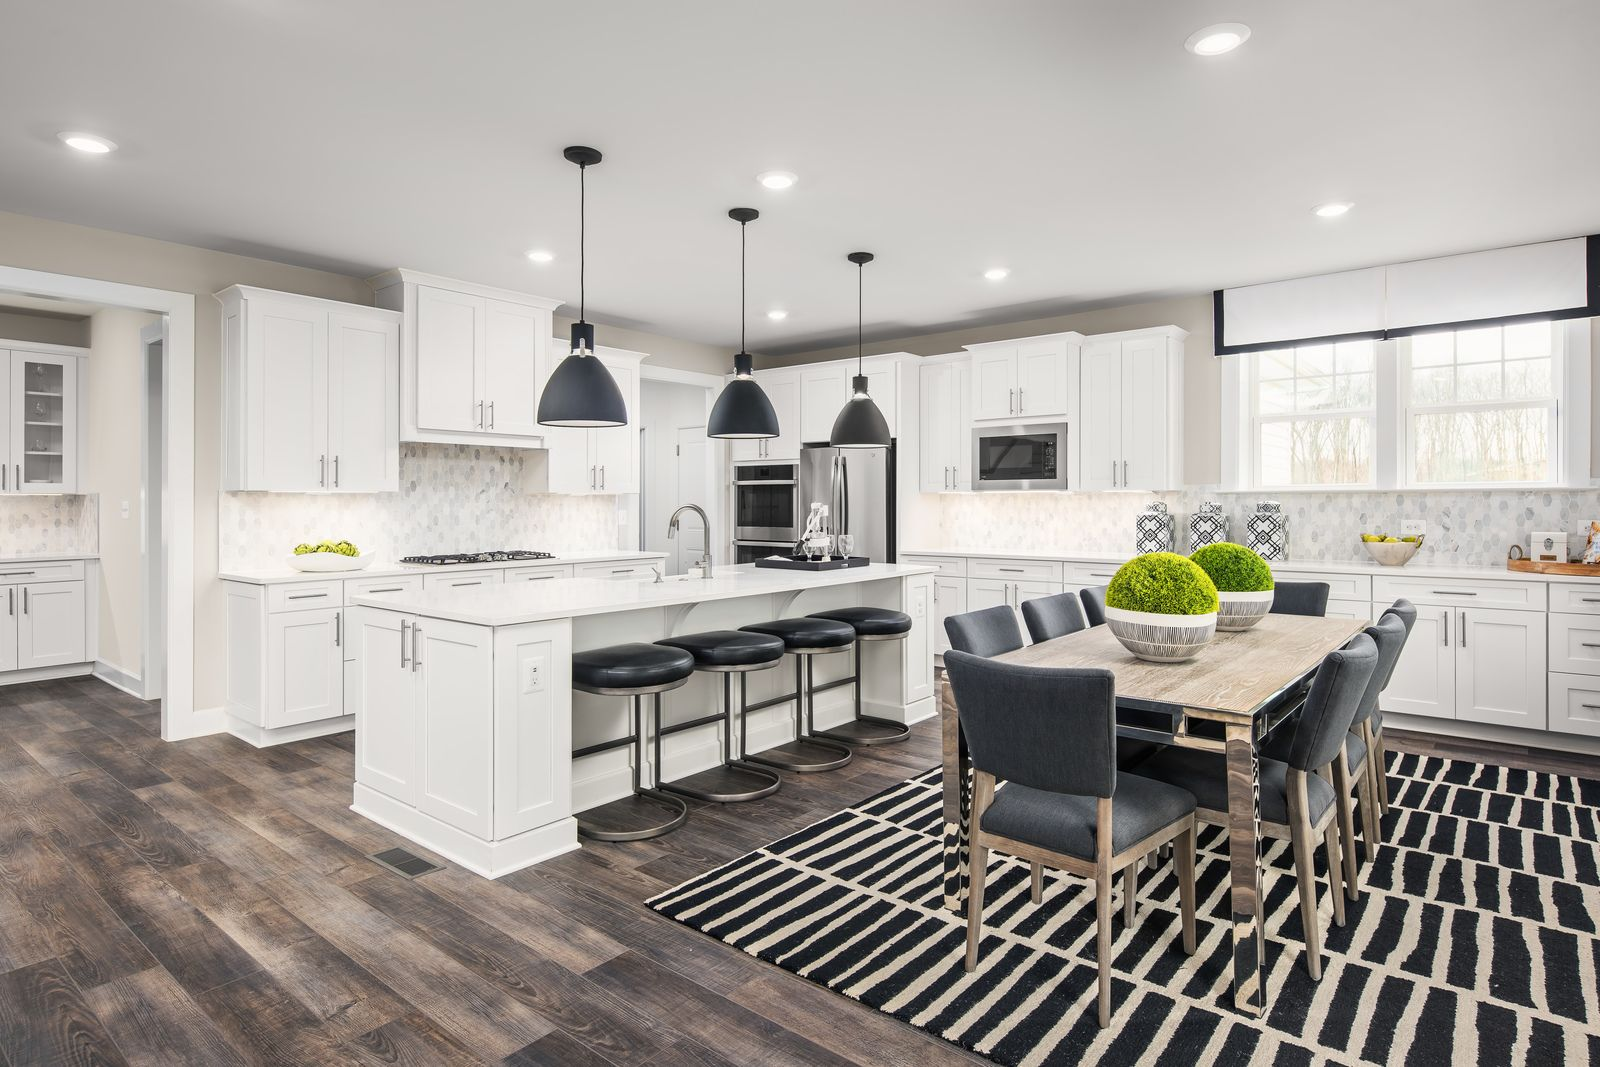 Kitchen featured in the Stratford Hall By HeartlandHomes in Morgantown, WV